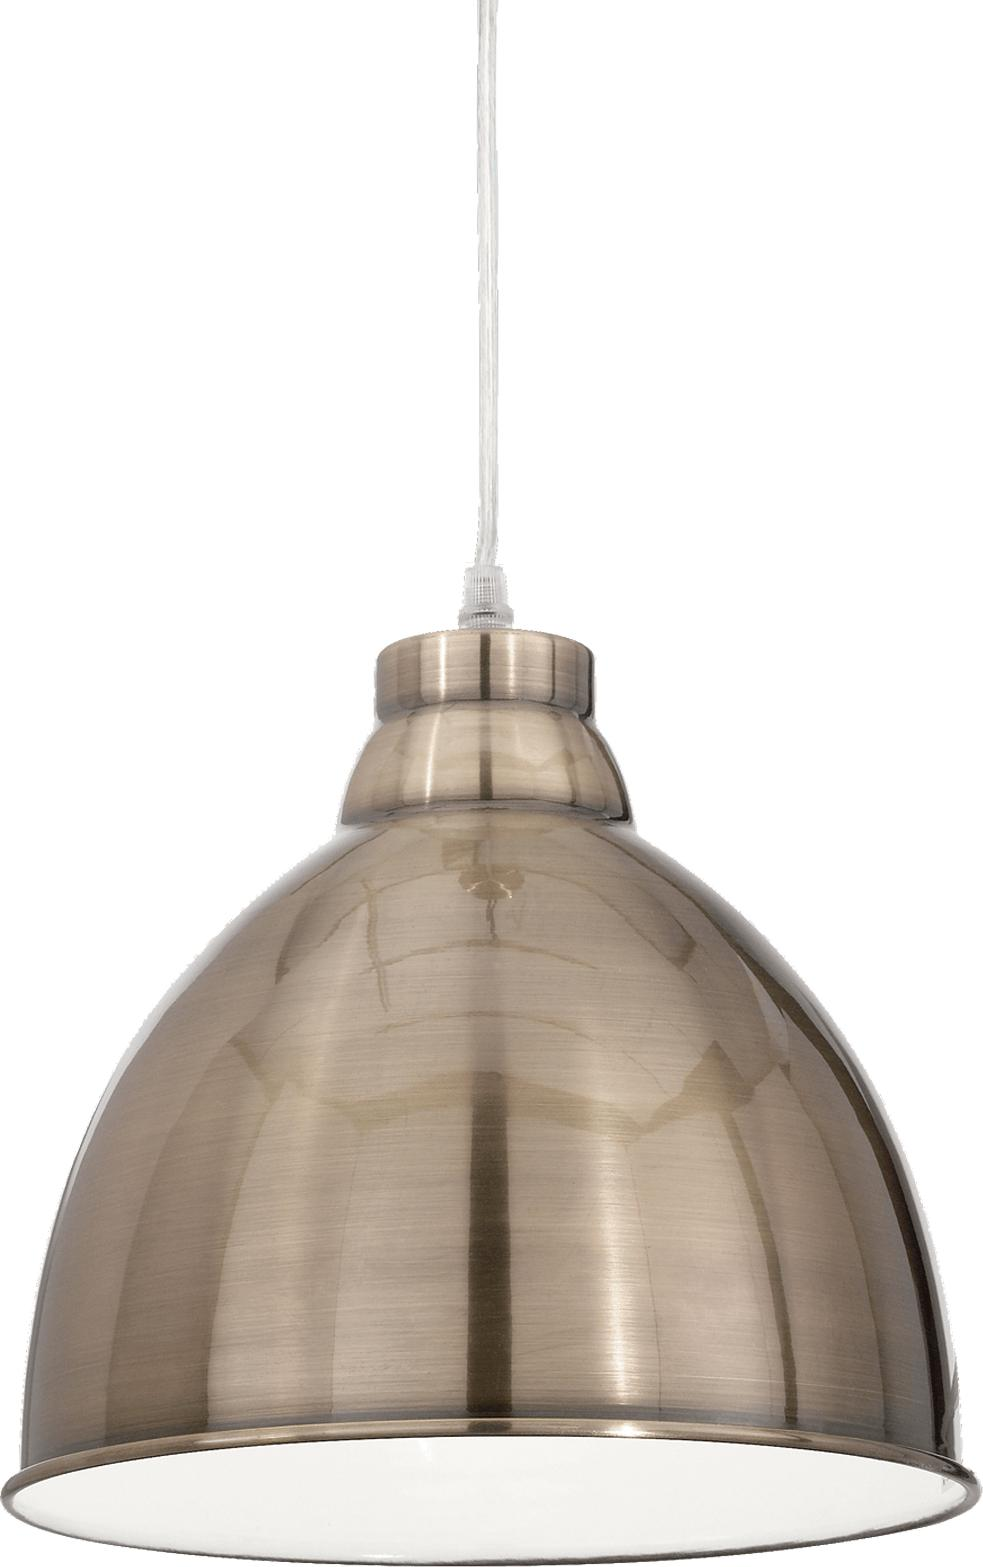 Ideal lux LED Navy Brunito haengende Lampe 5W 20723